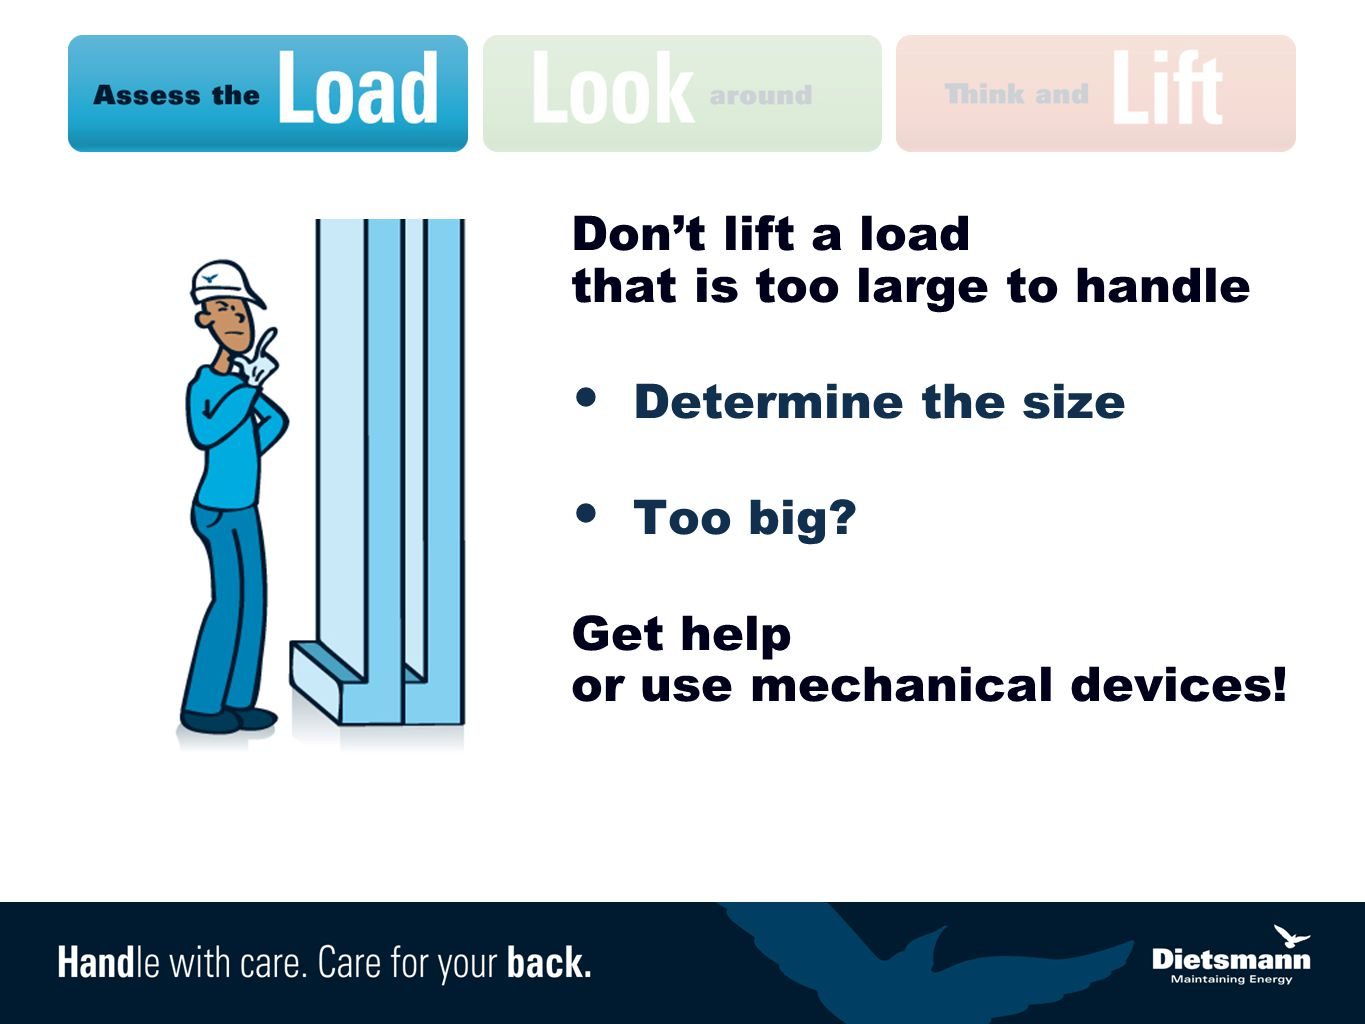 Don't lift a load that is too large to handle